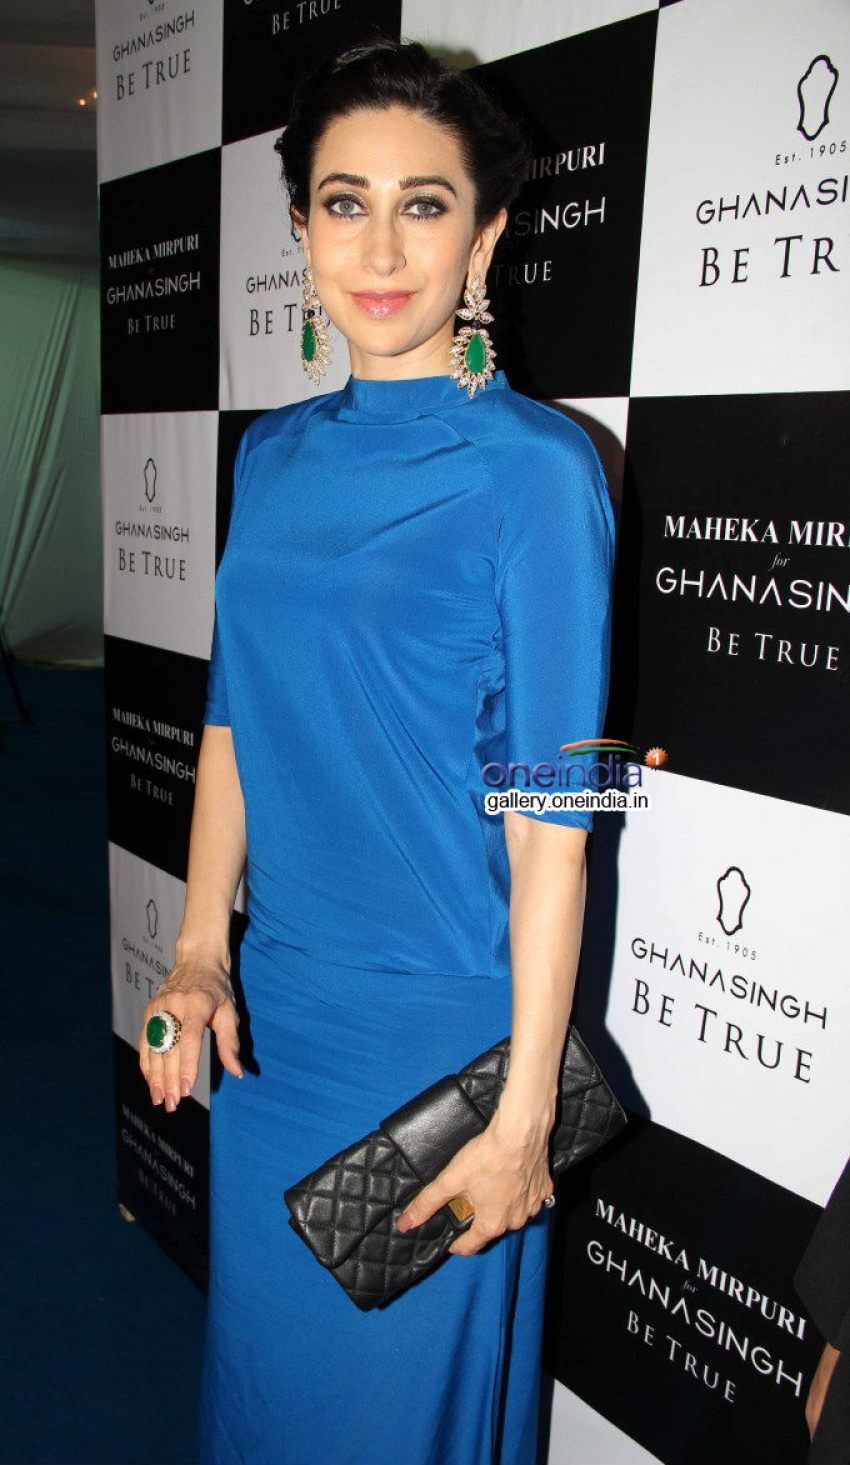 Karisma Kapoor inagurates Be True jewellery store Photos